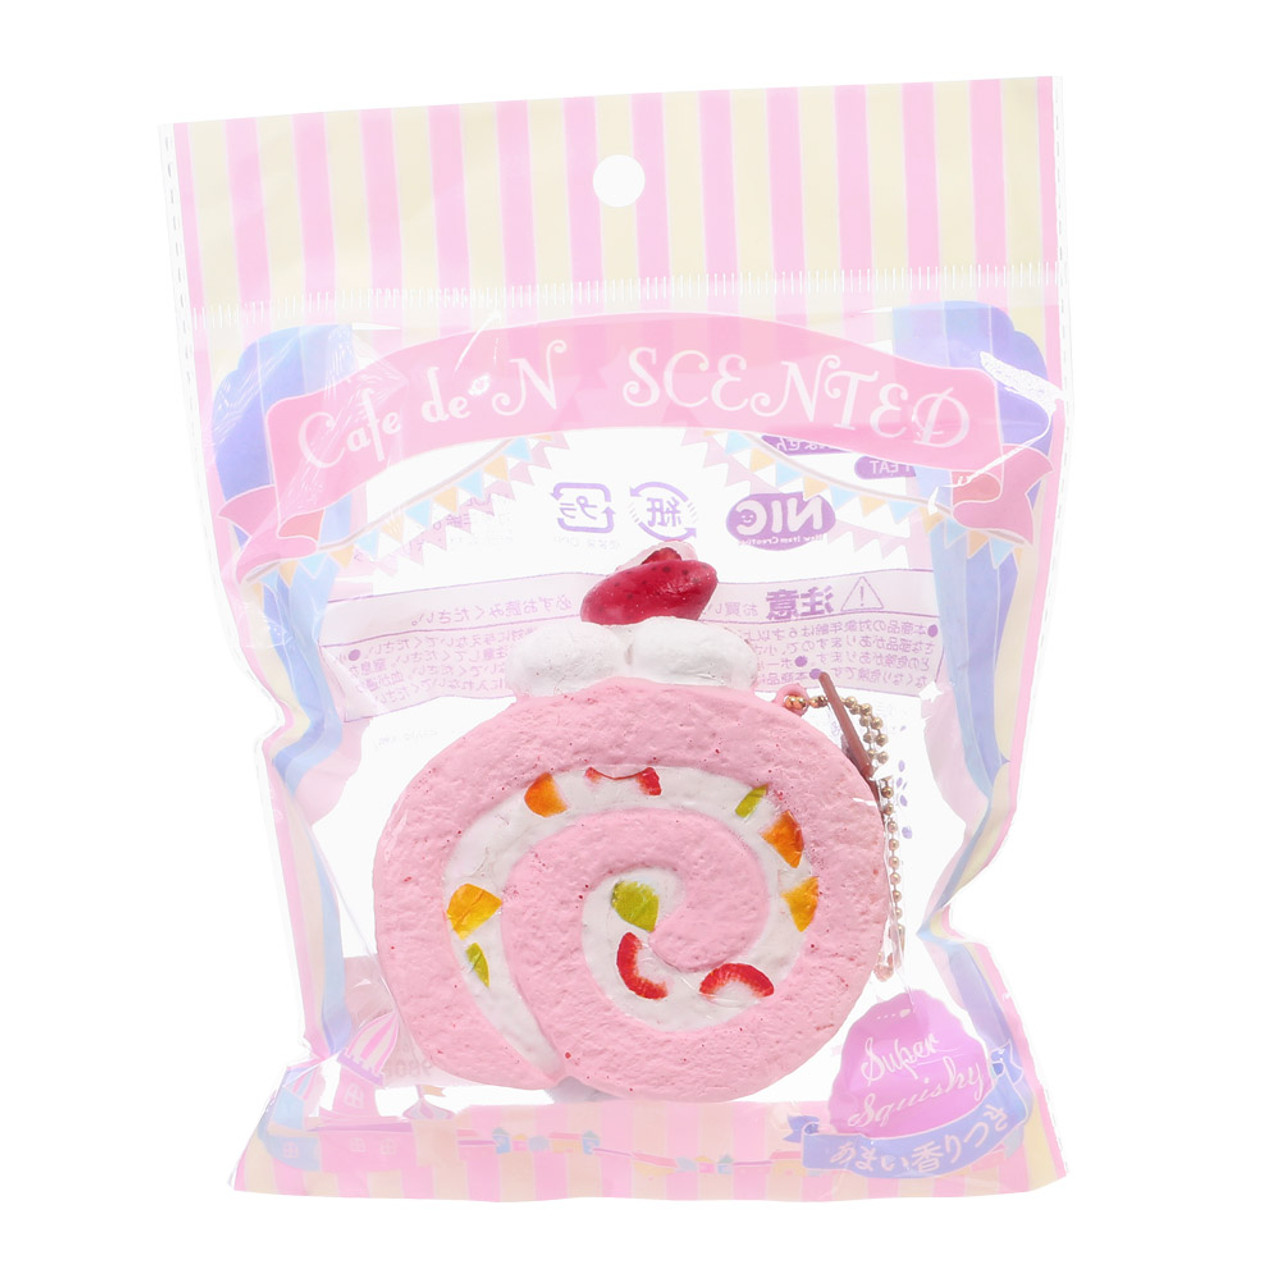 Café De N Scented Strawberry Roll Cake Squishy Toys Charms ( Package View )